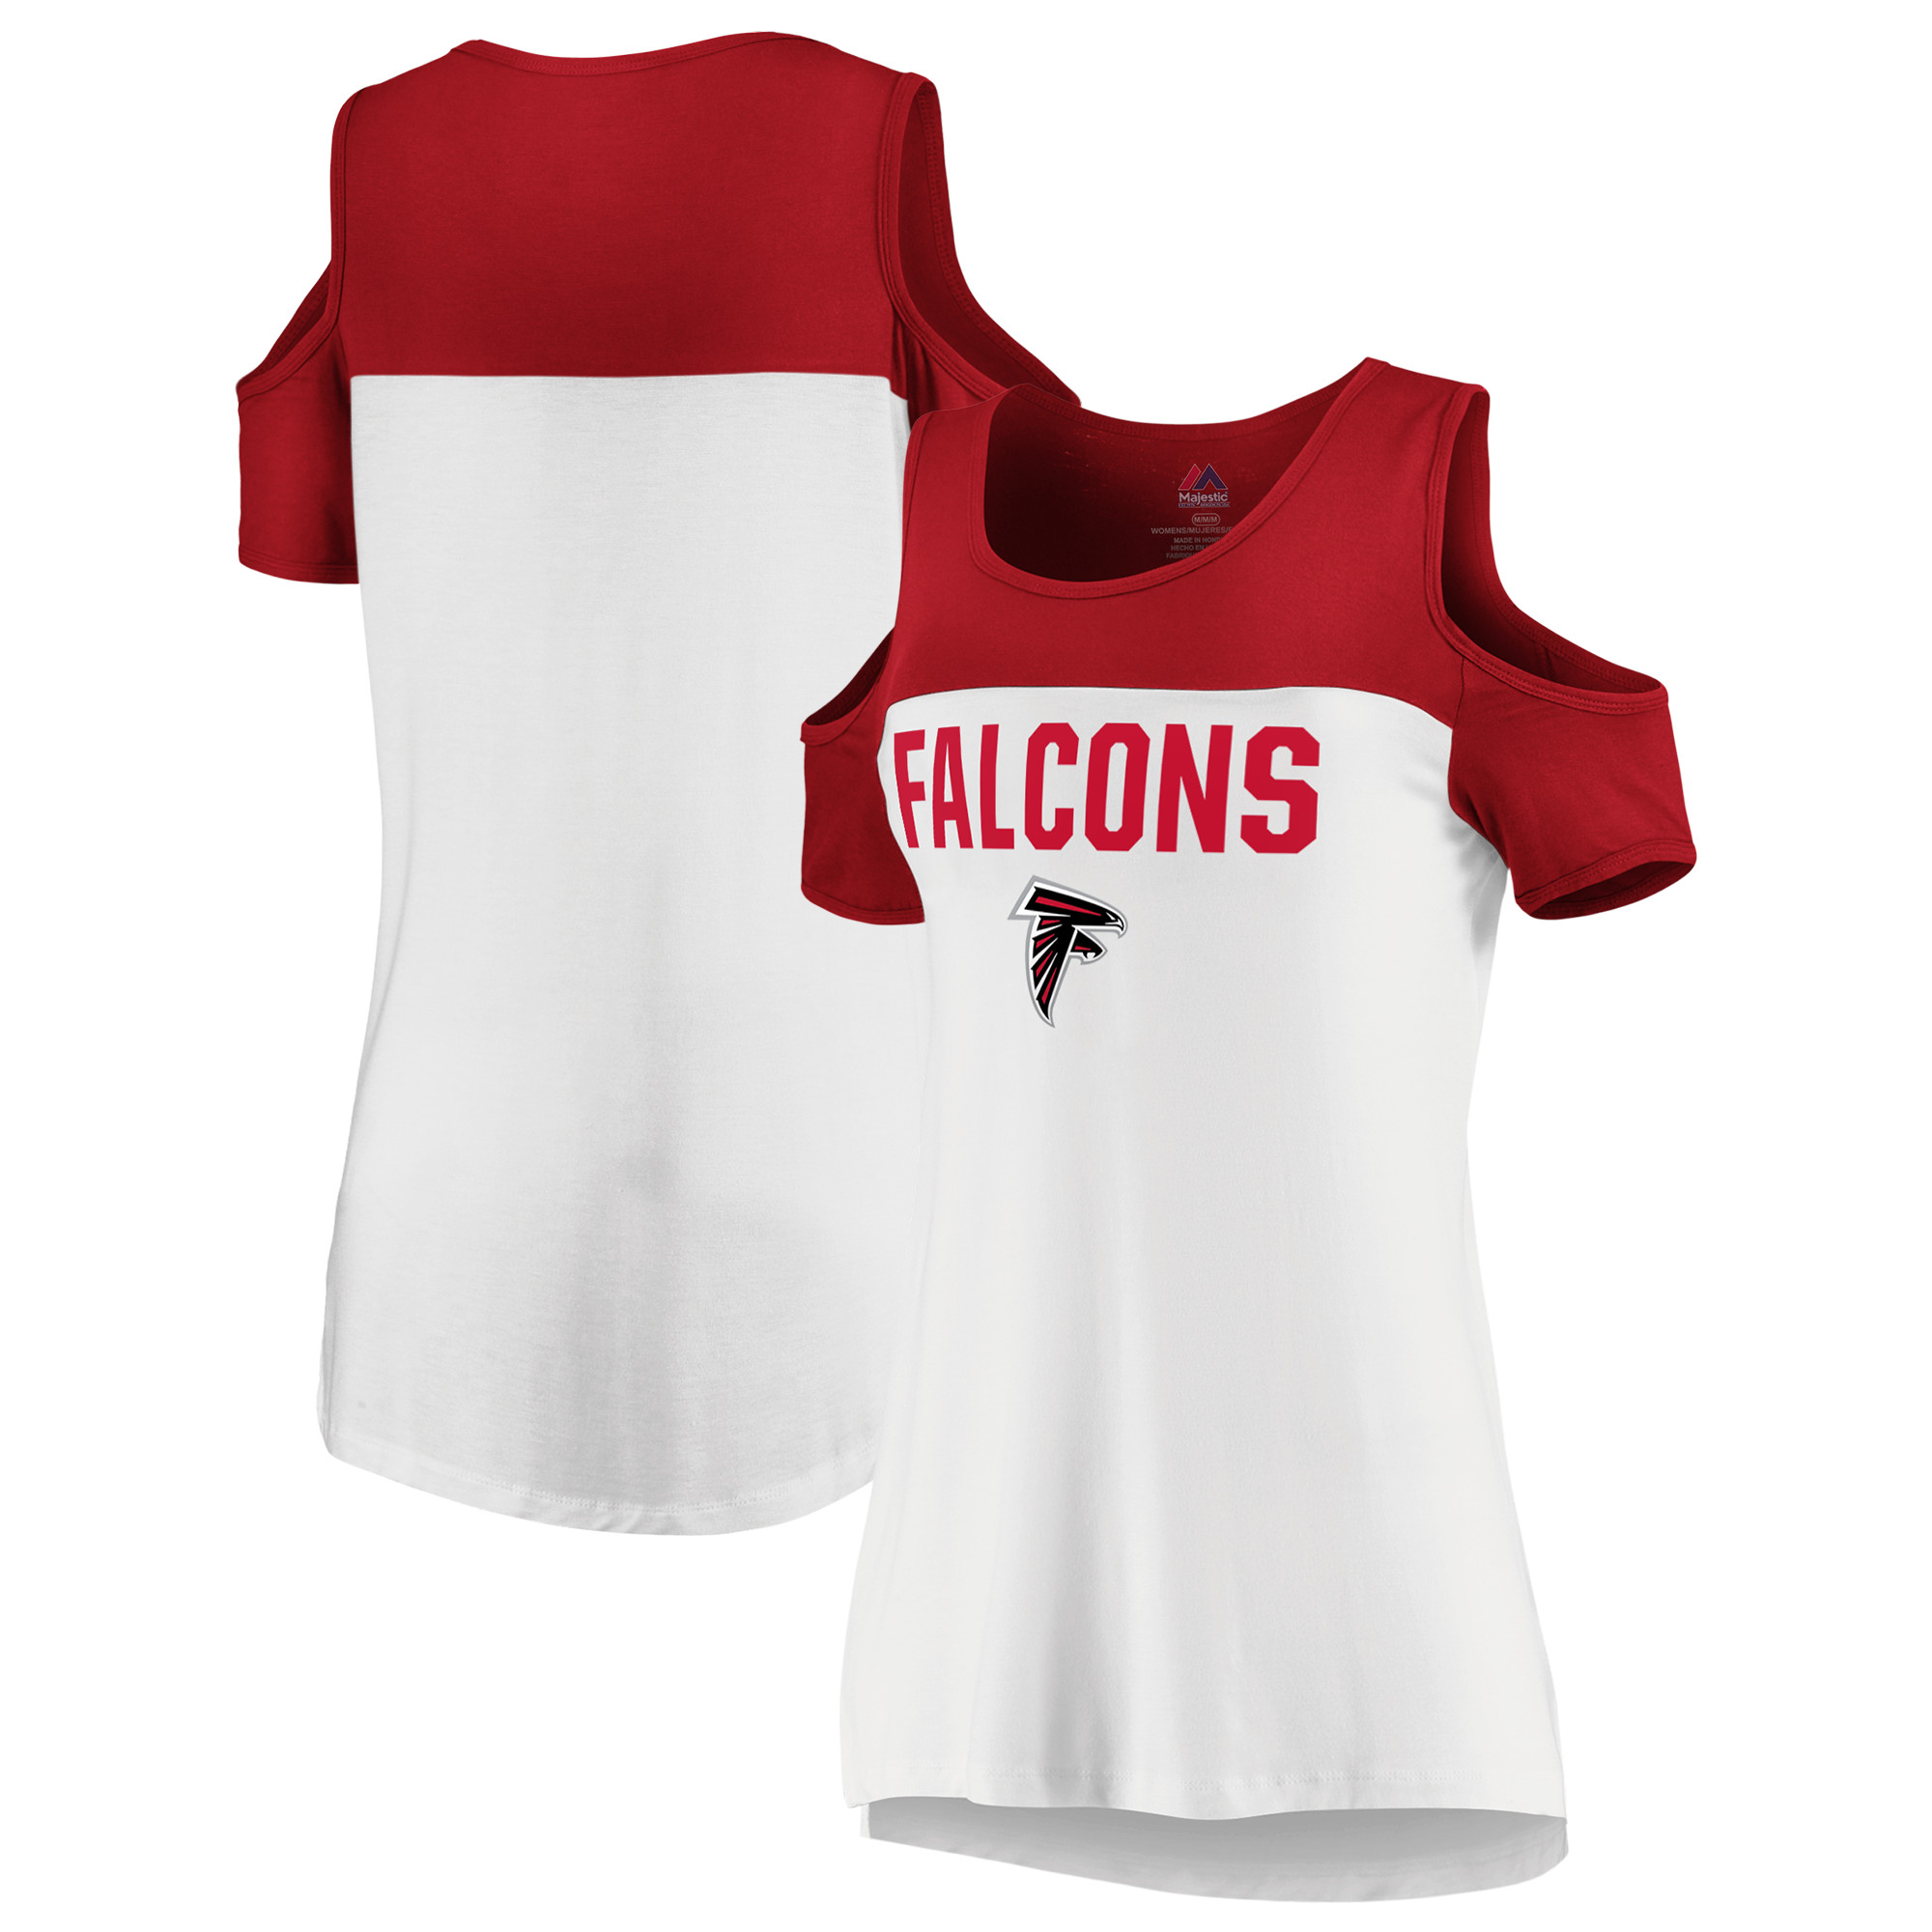 Atlanta Falcons Majestic Women's Pure Dedication Open Shoulder T-Shirt - White/Red